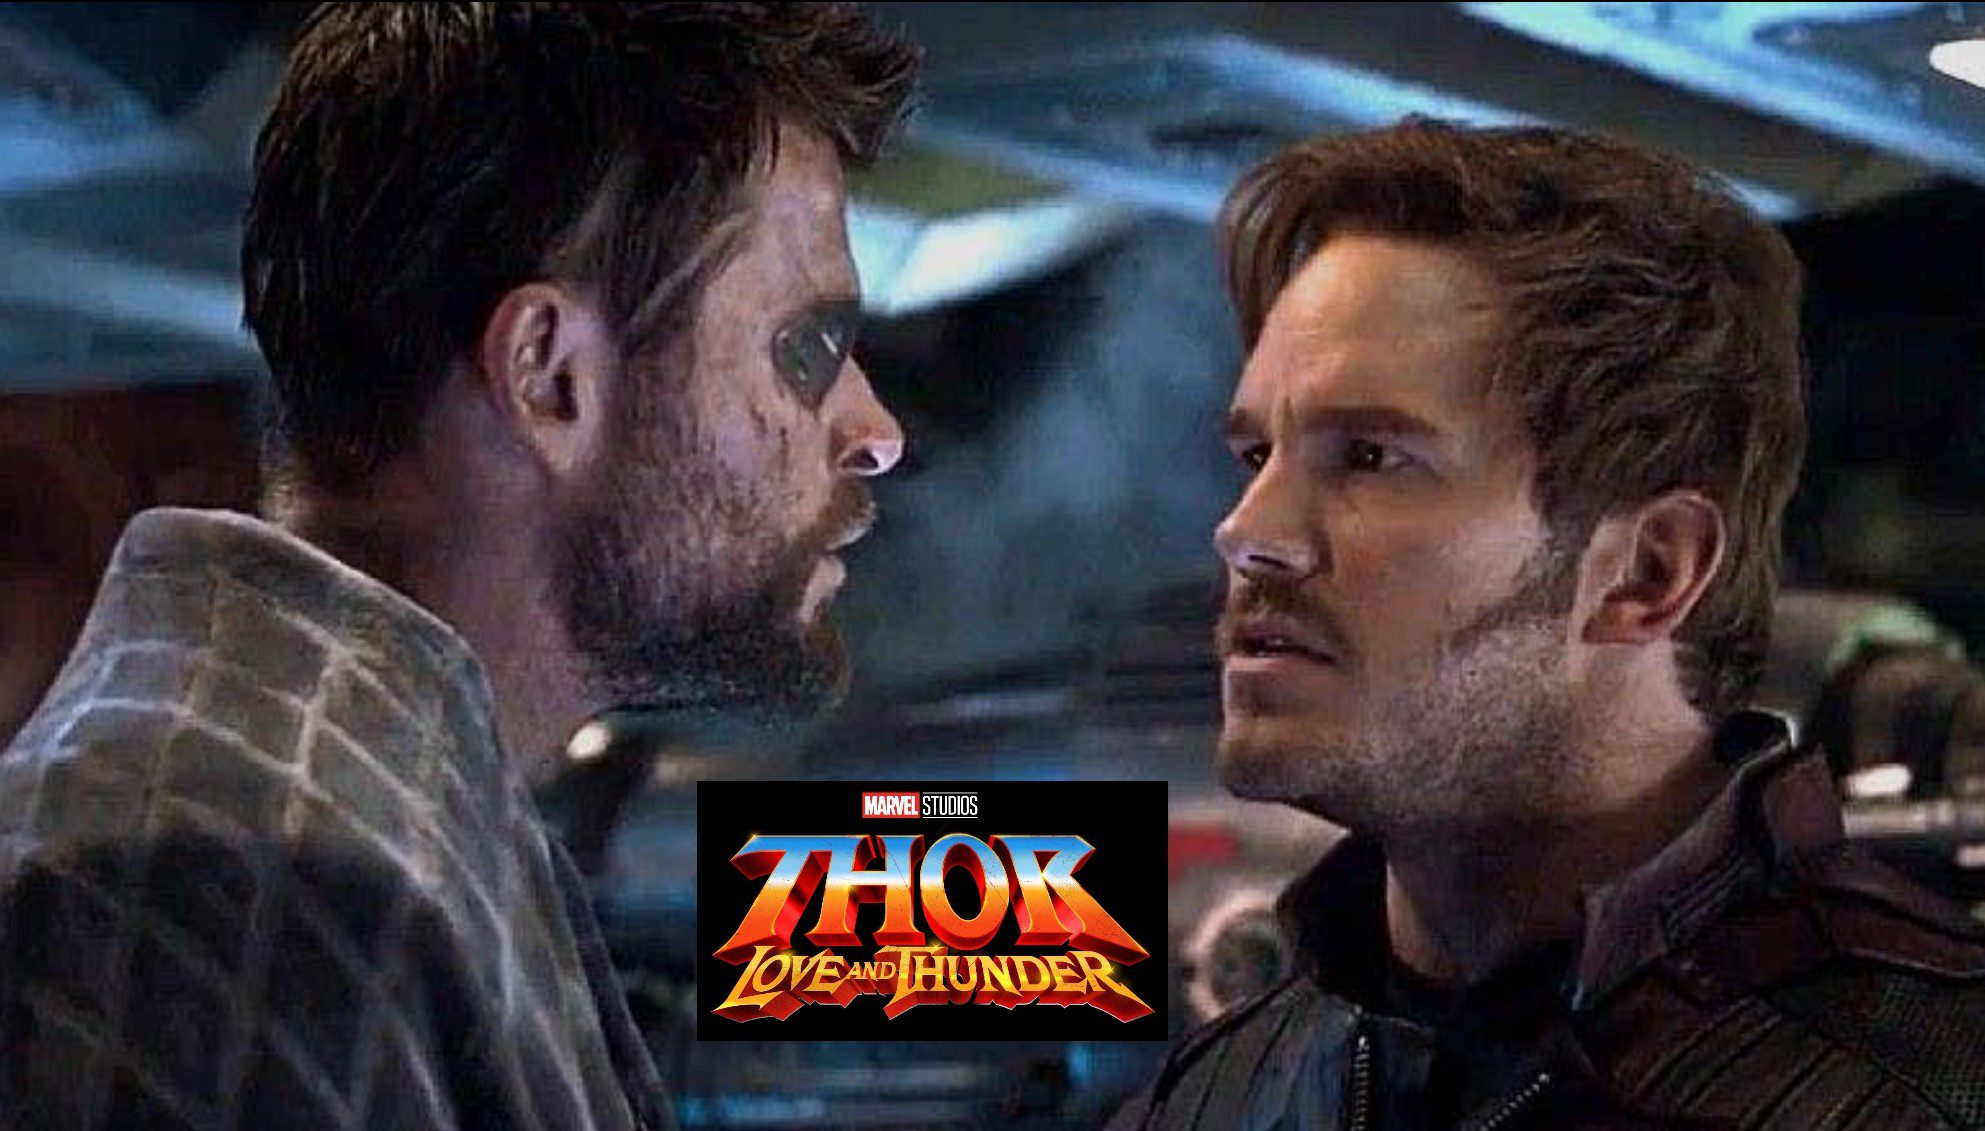 Chris Pratt confirmed to appear in Thor: Love and Thunder